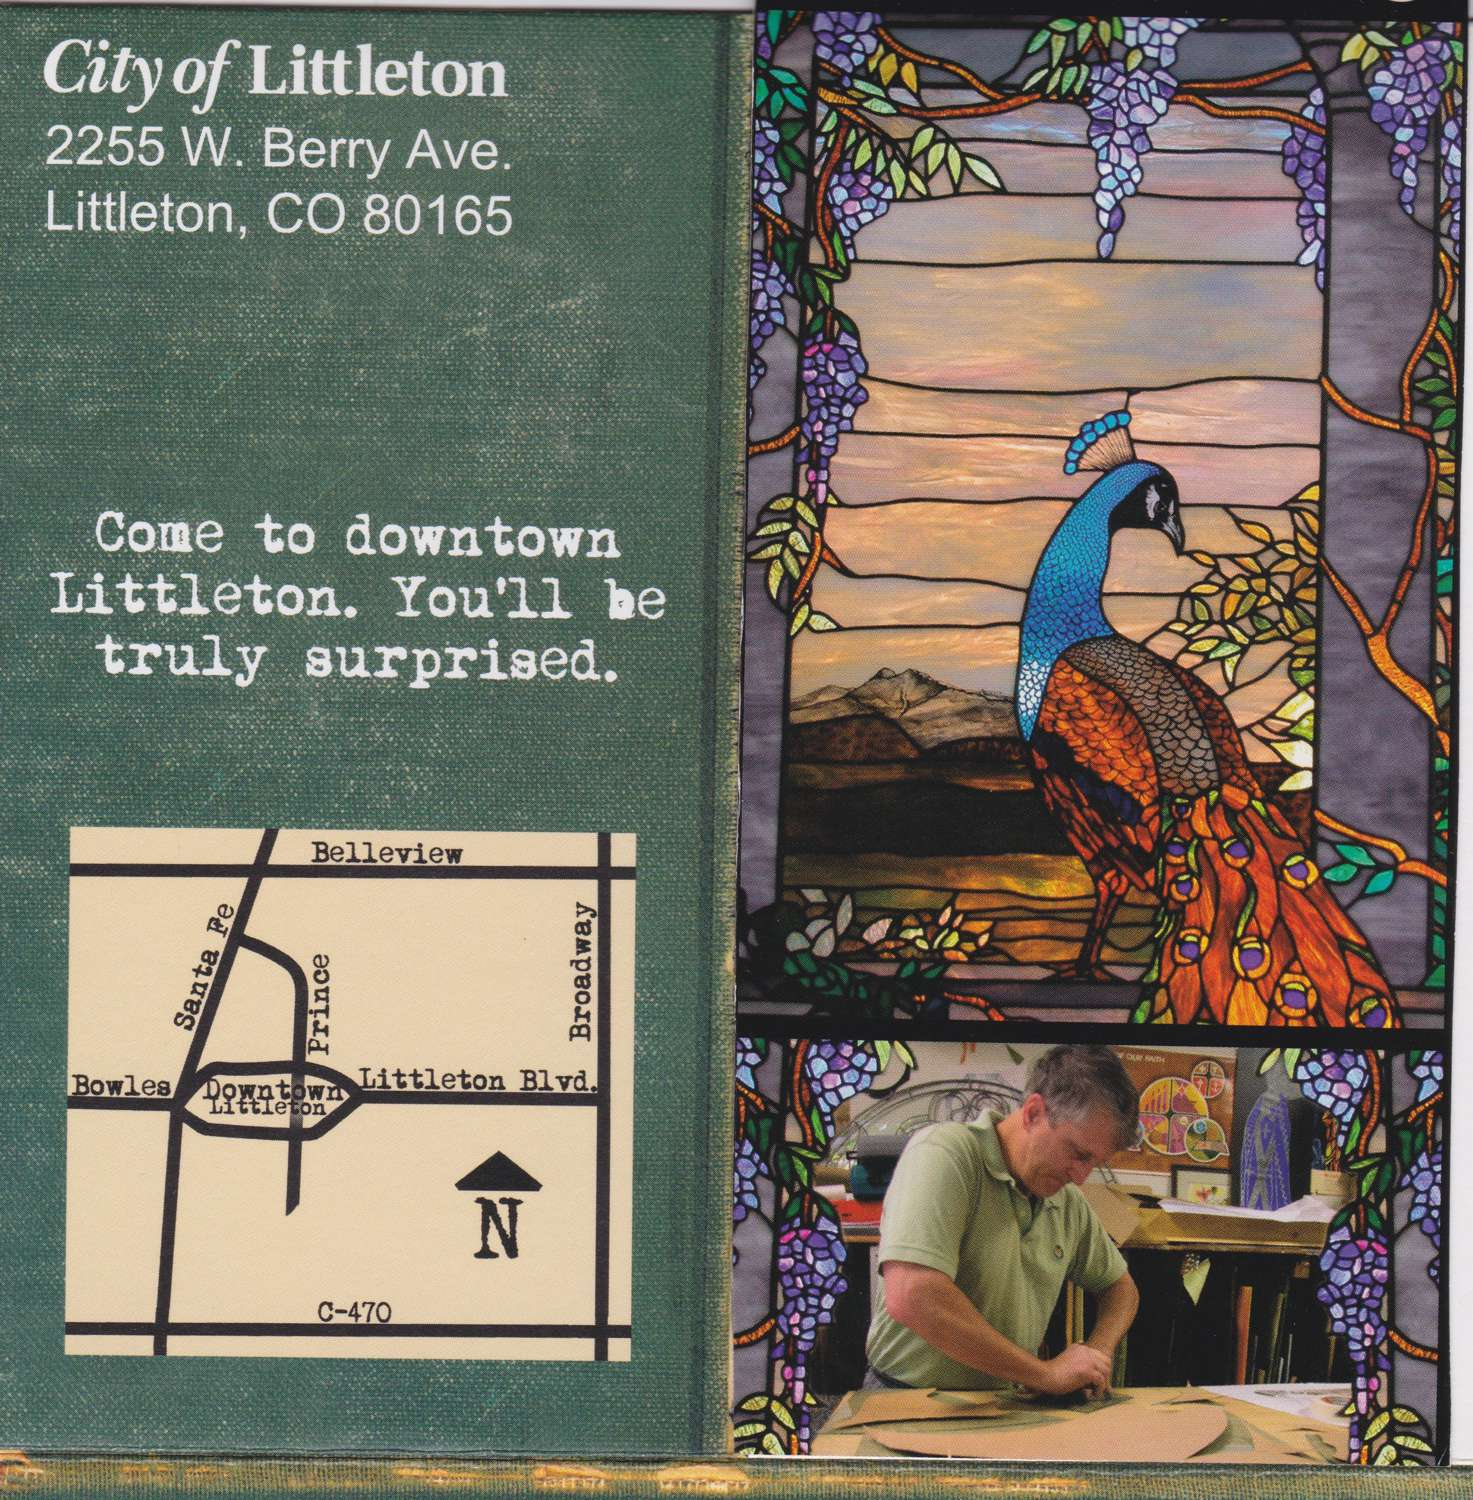 City of Littleton brochure